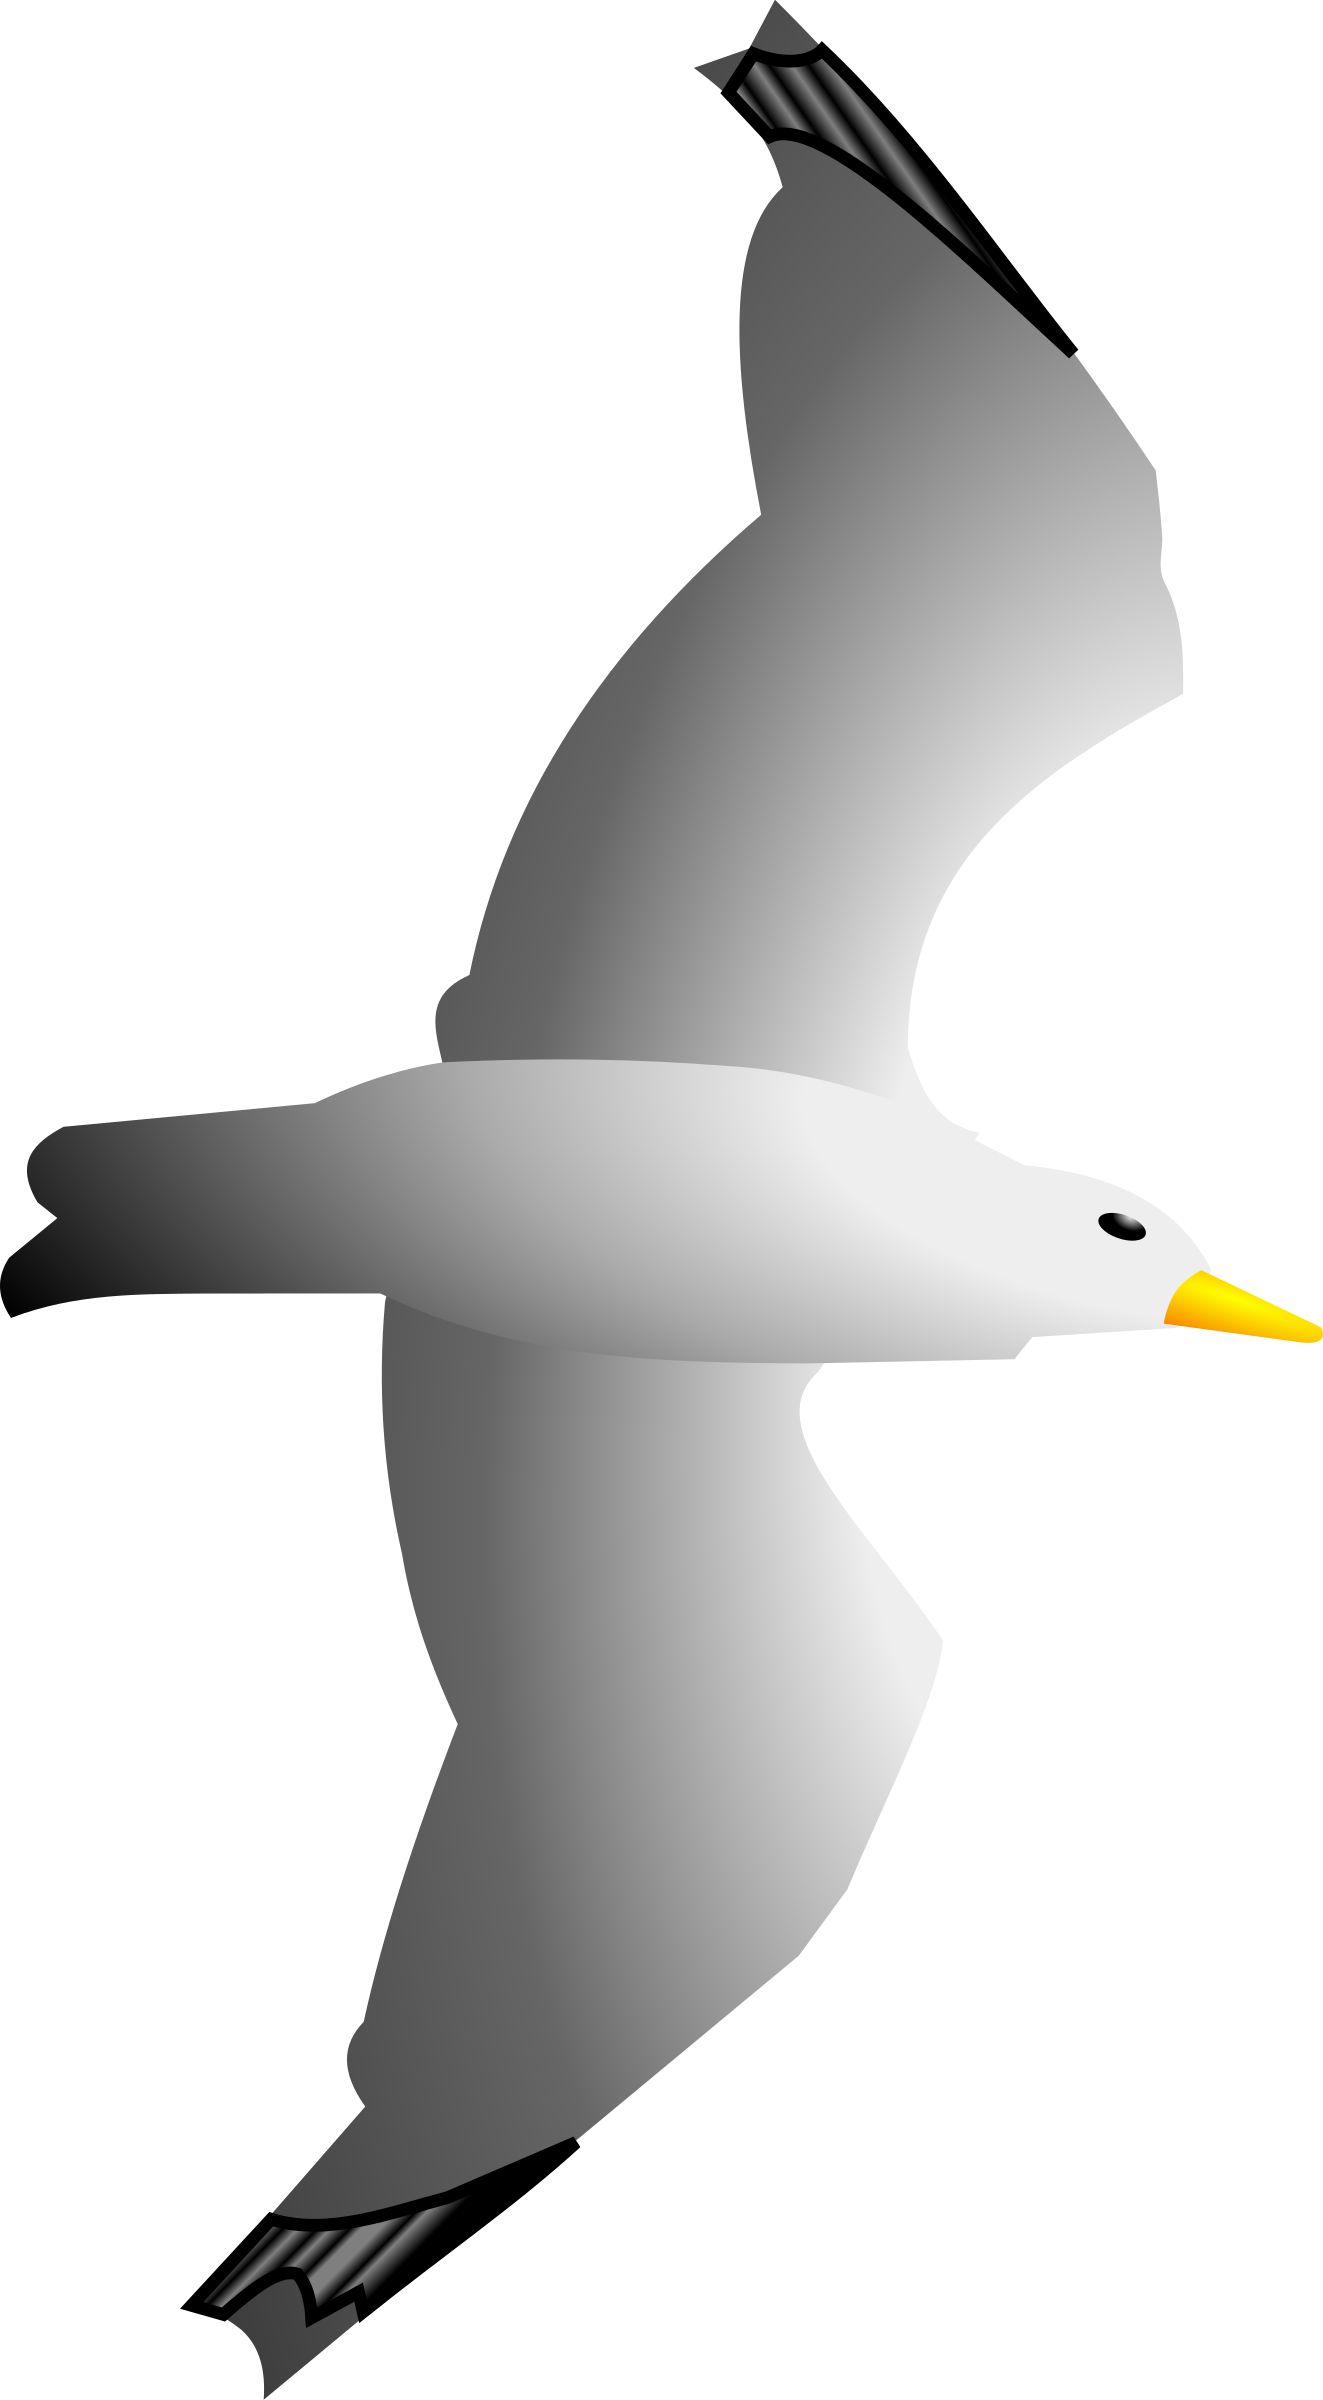 Seagull clipart #1, Download drawings